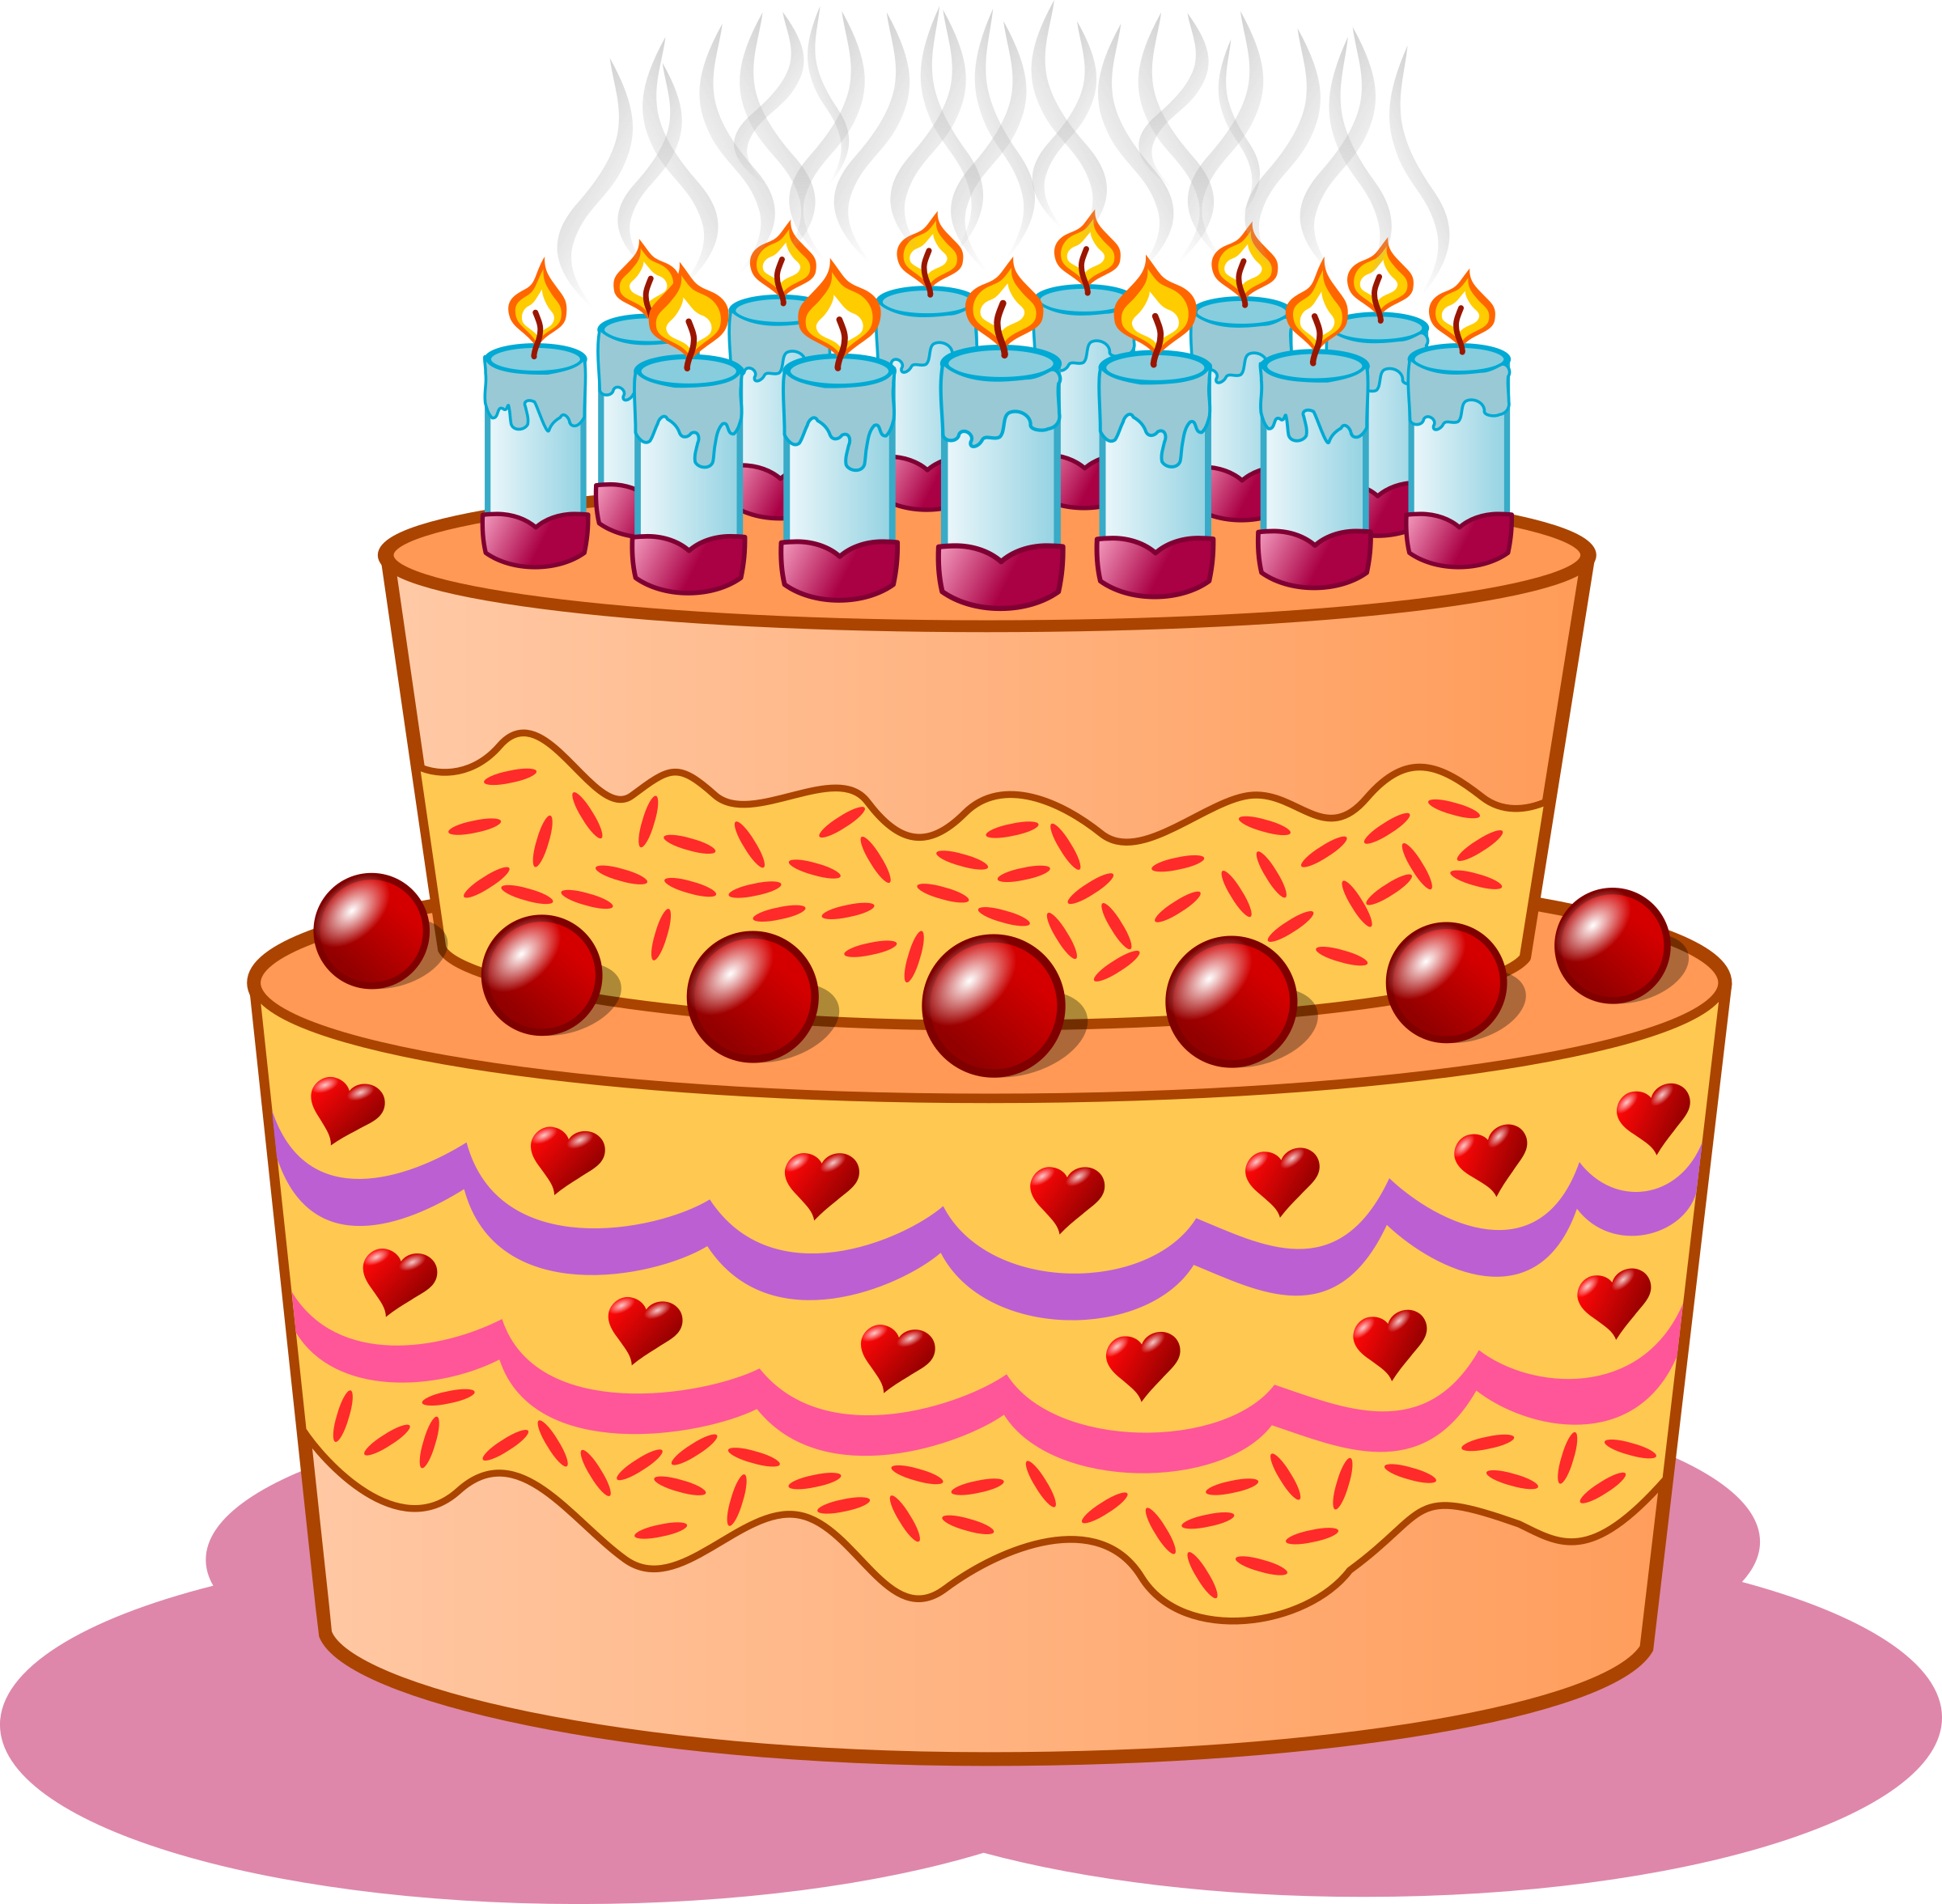 Birthday cake clipart png. Big image